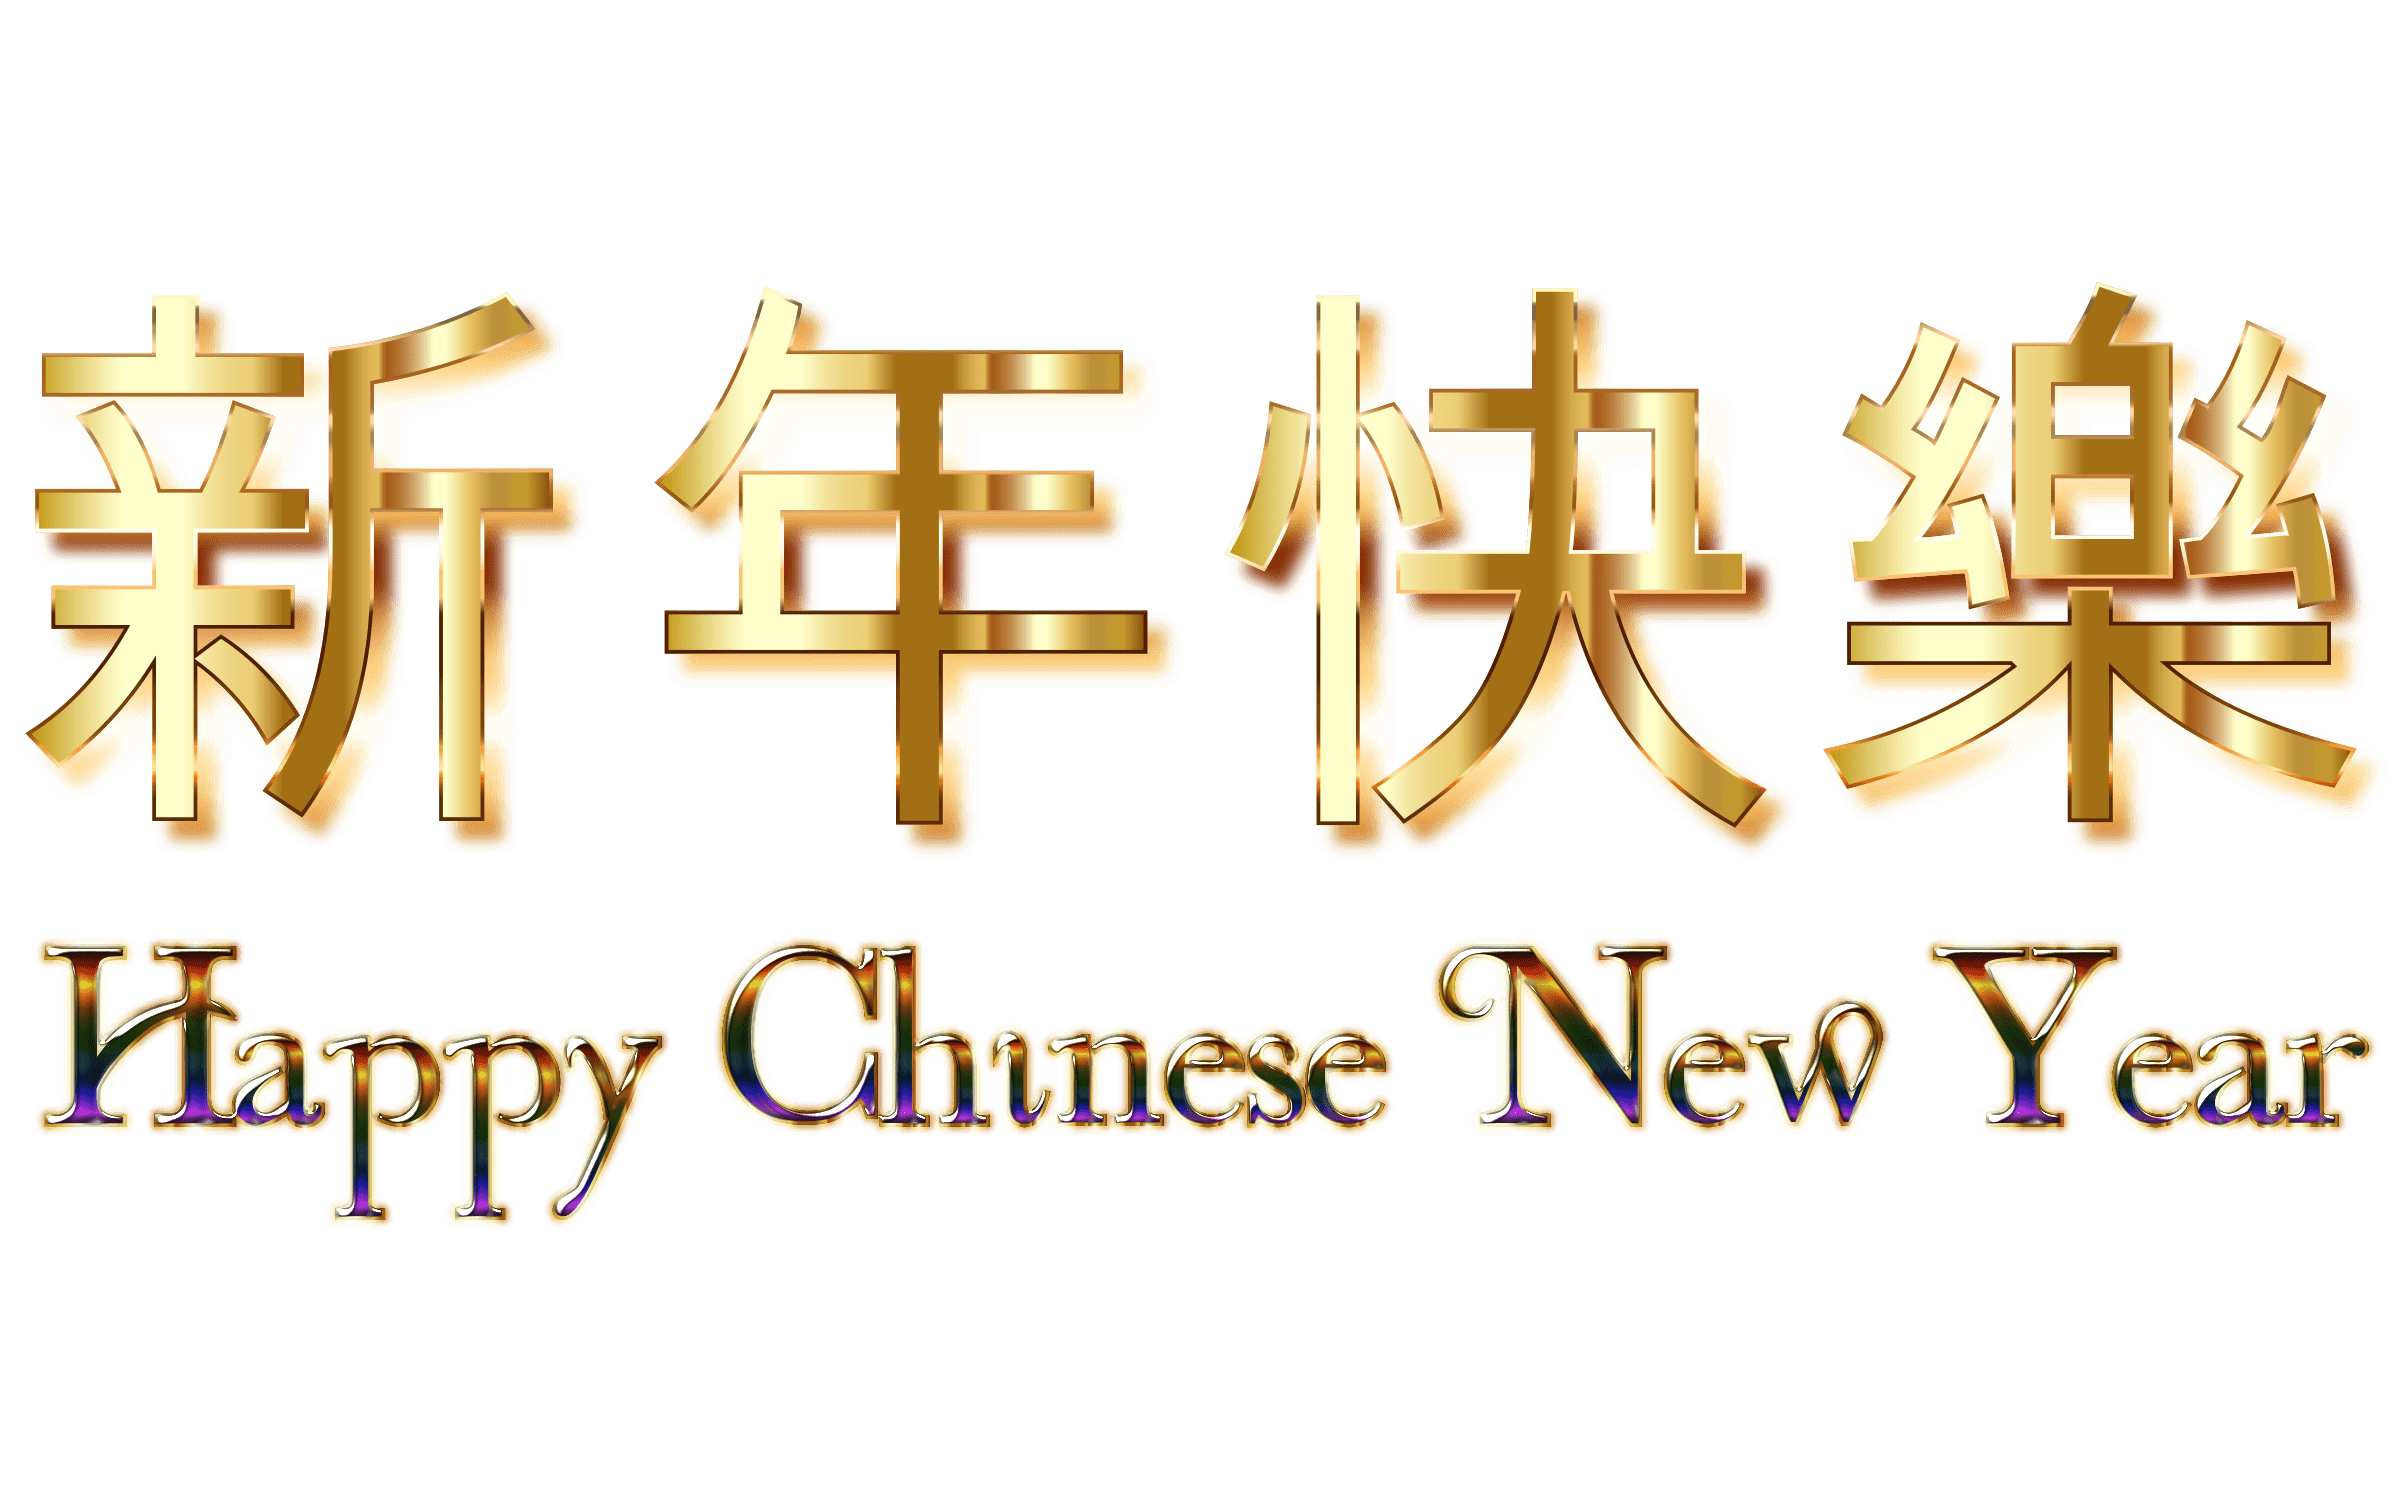 Chinese New Year HD PNG - 89180